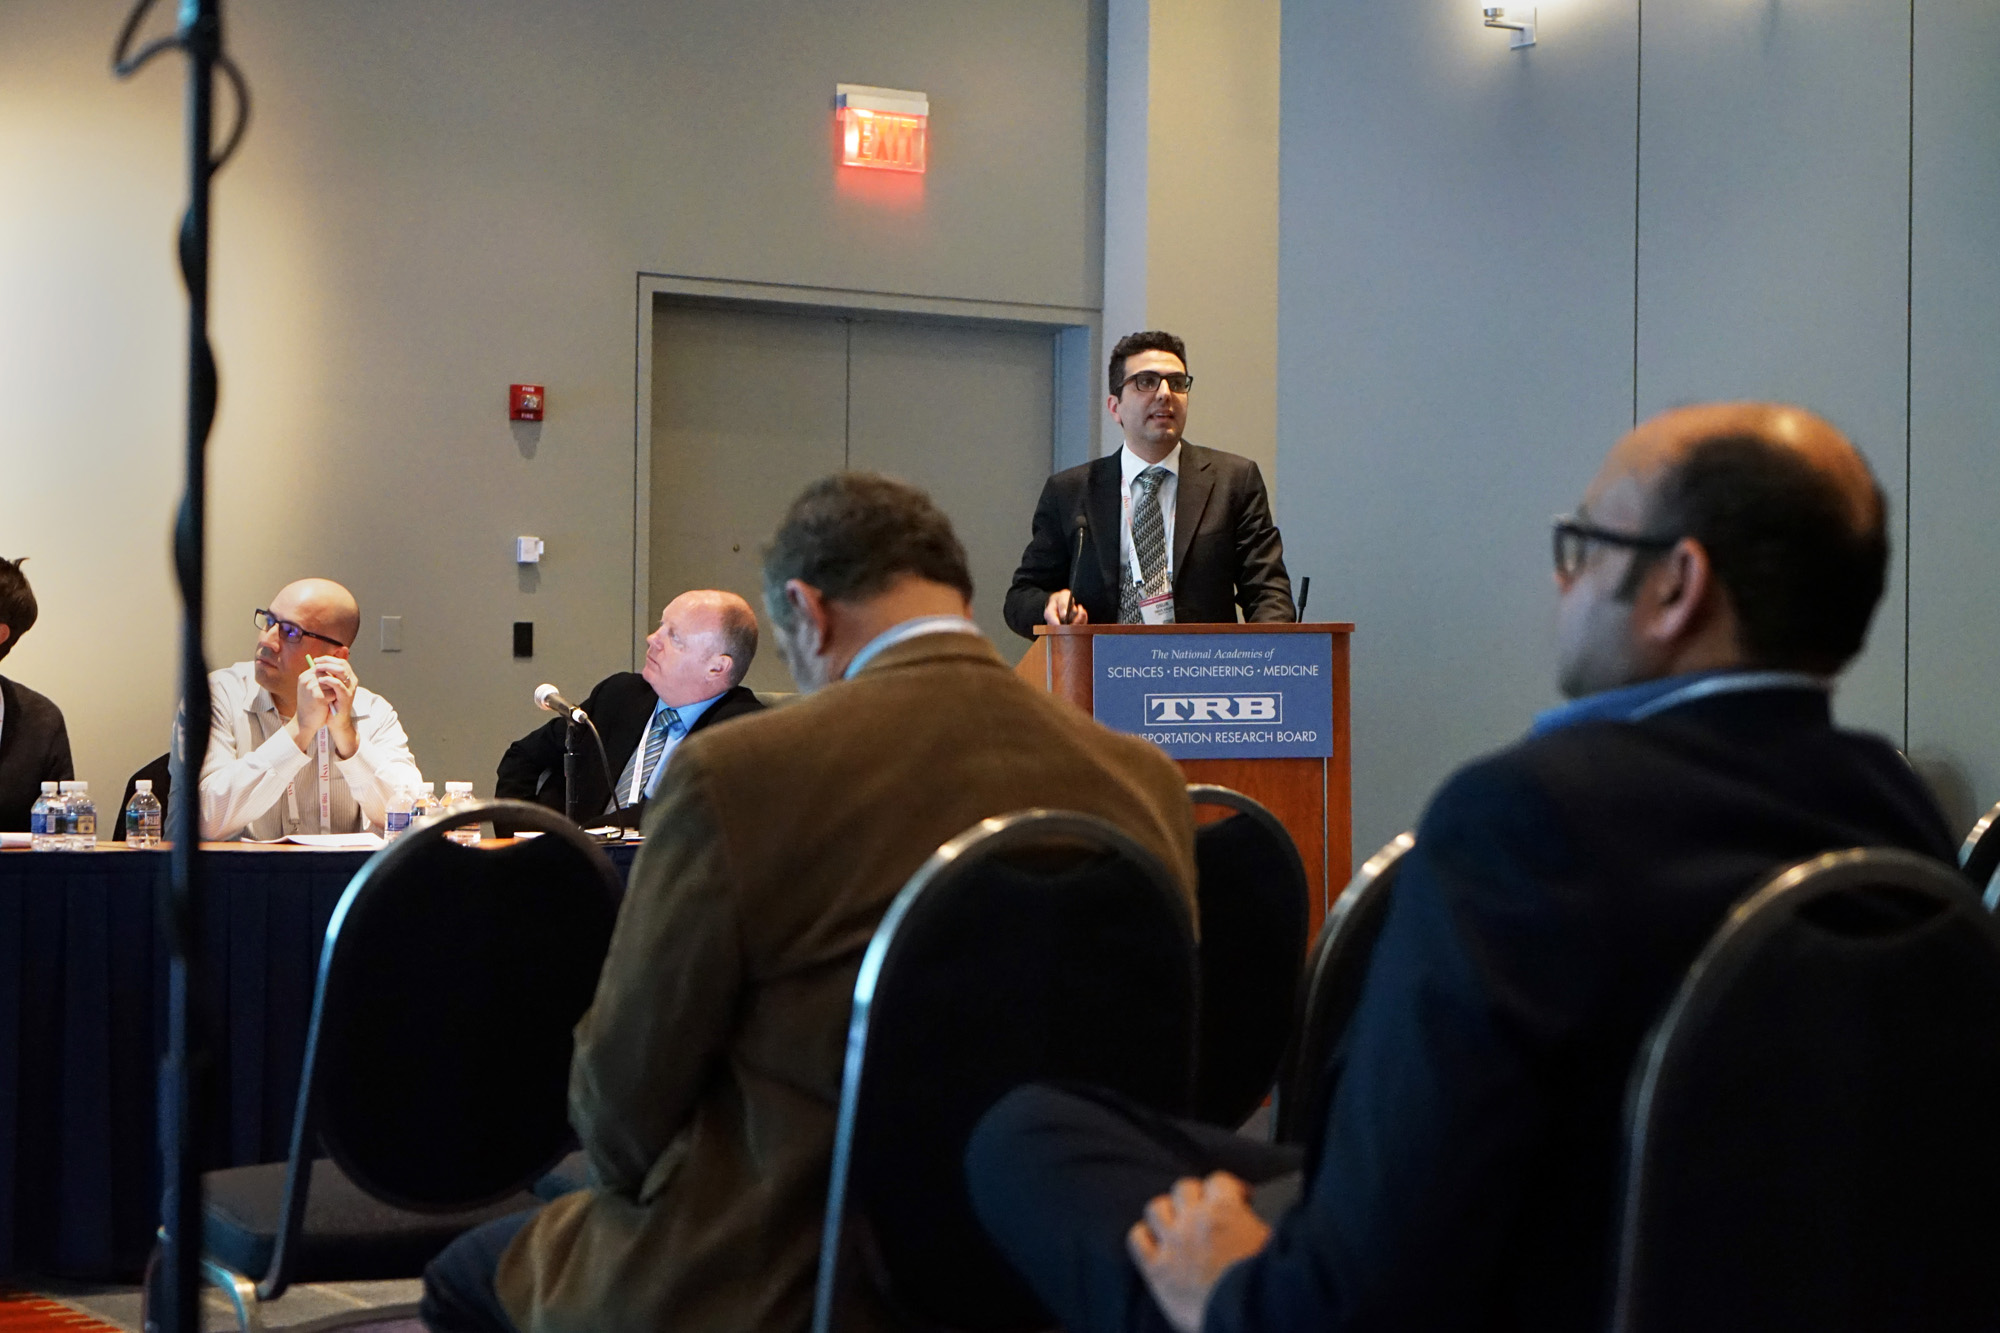 Postdoctoral researcher Onur Kalan presents during a lectern session at TRB.